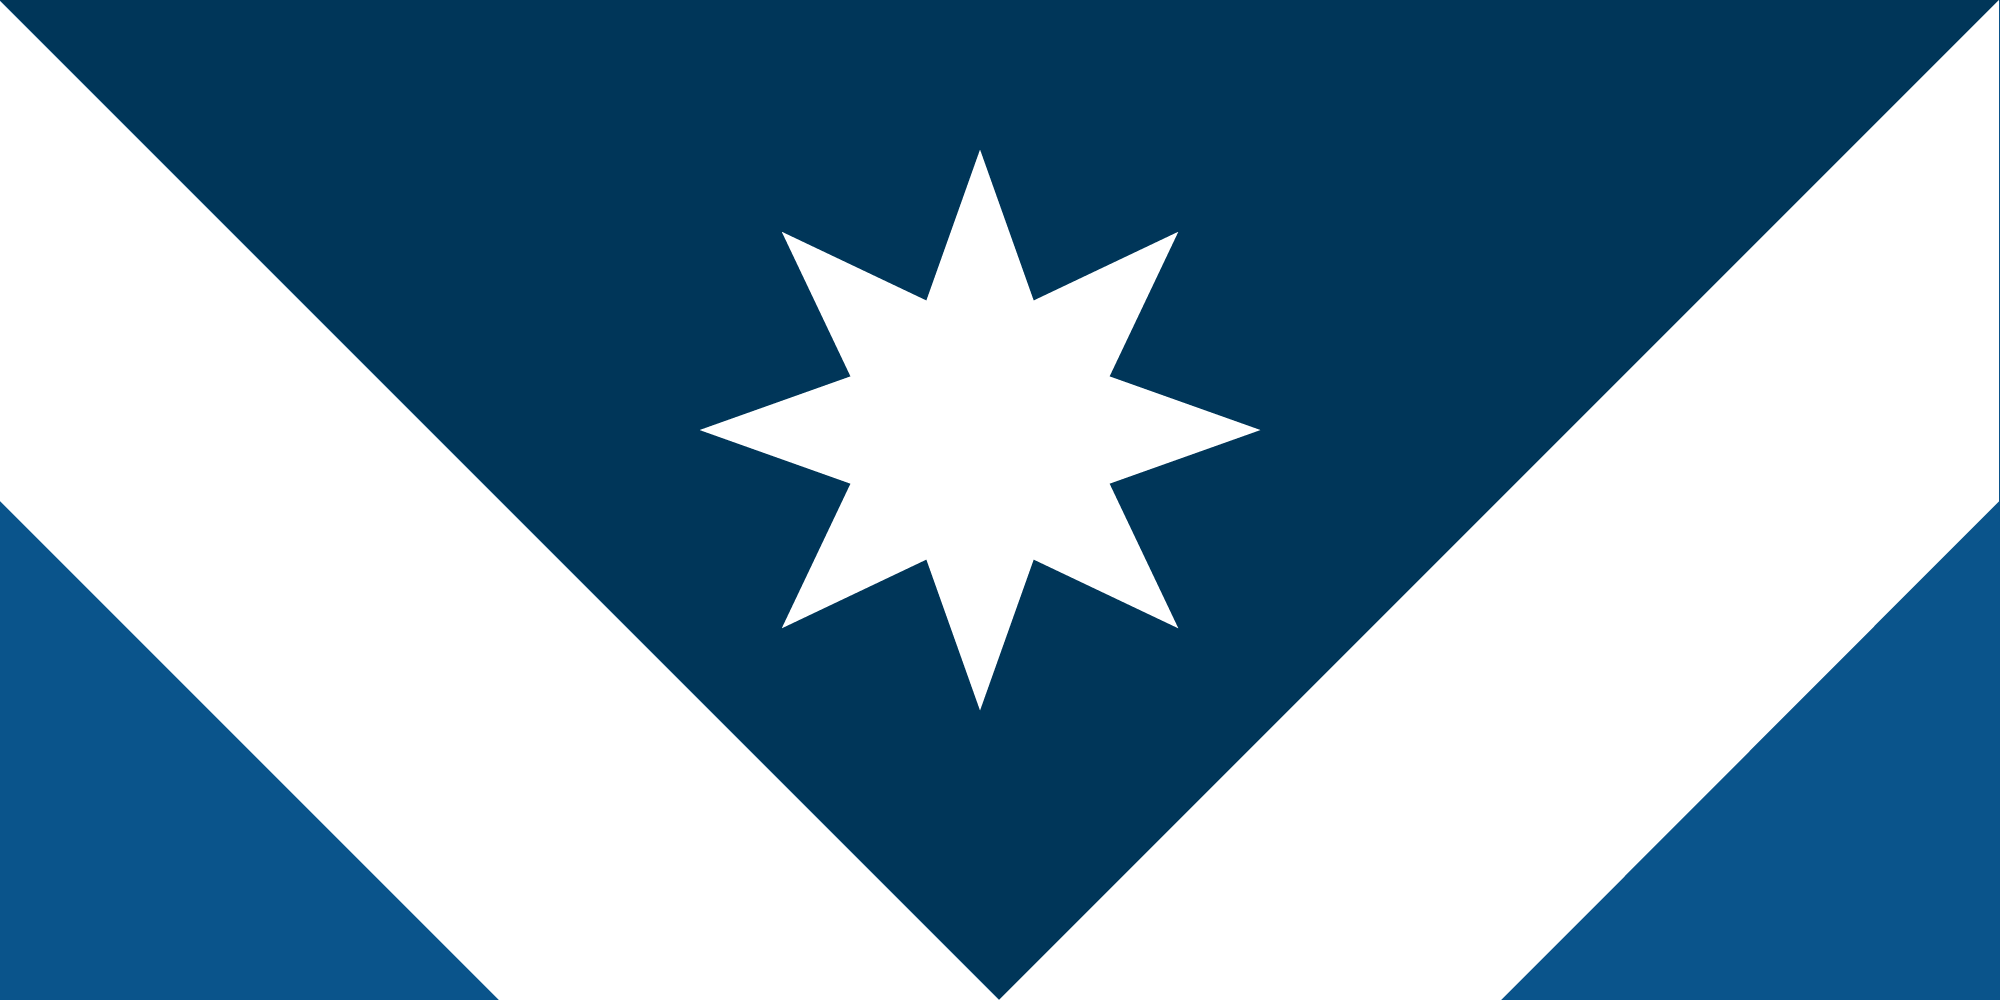 A state flag proposal for VIC